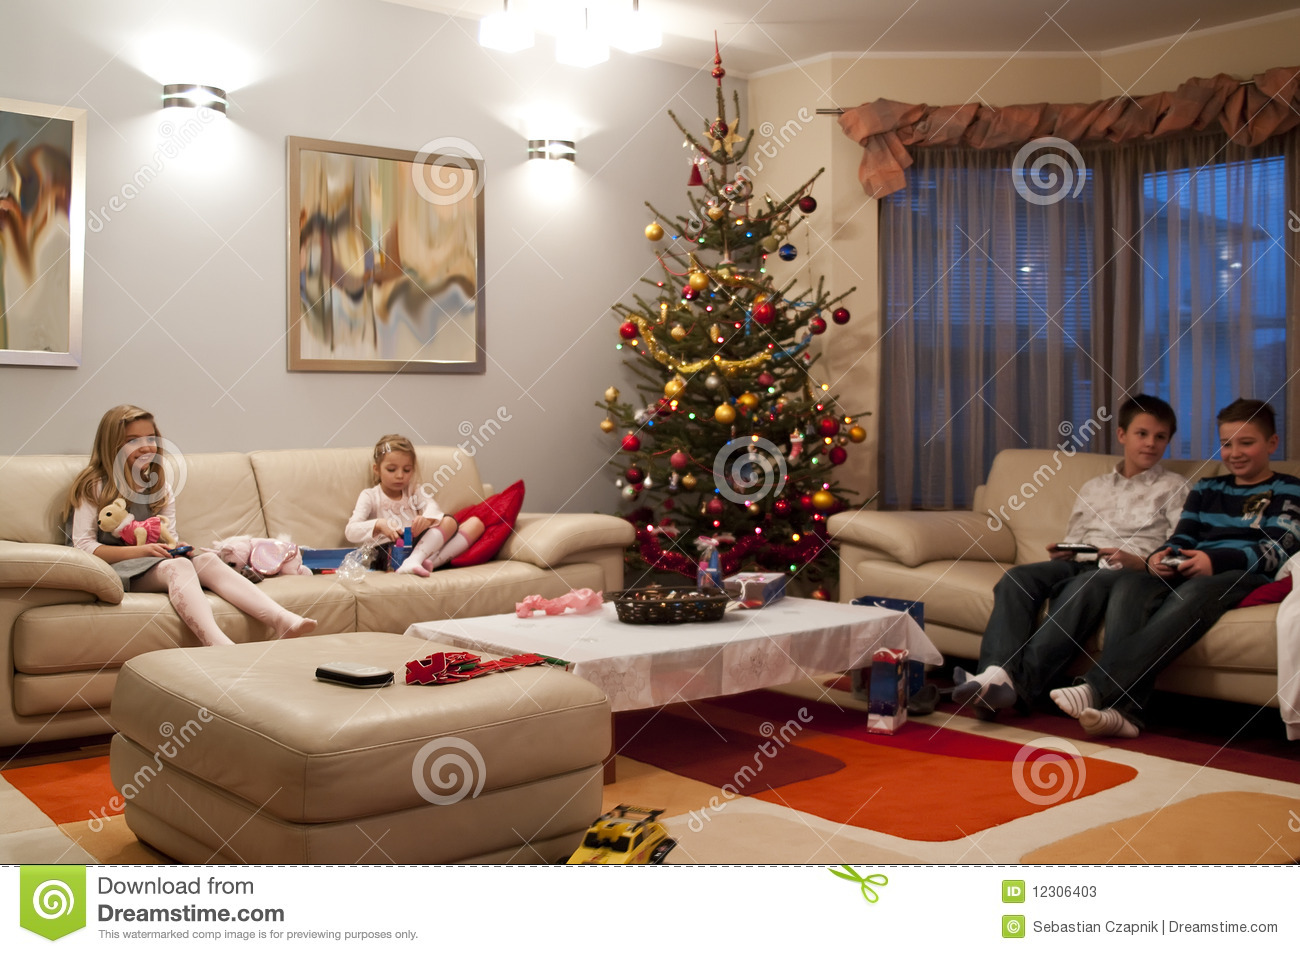 Children in living room stock image image of colorful for Living room or sitting room